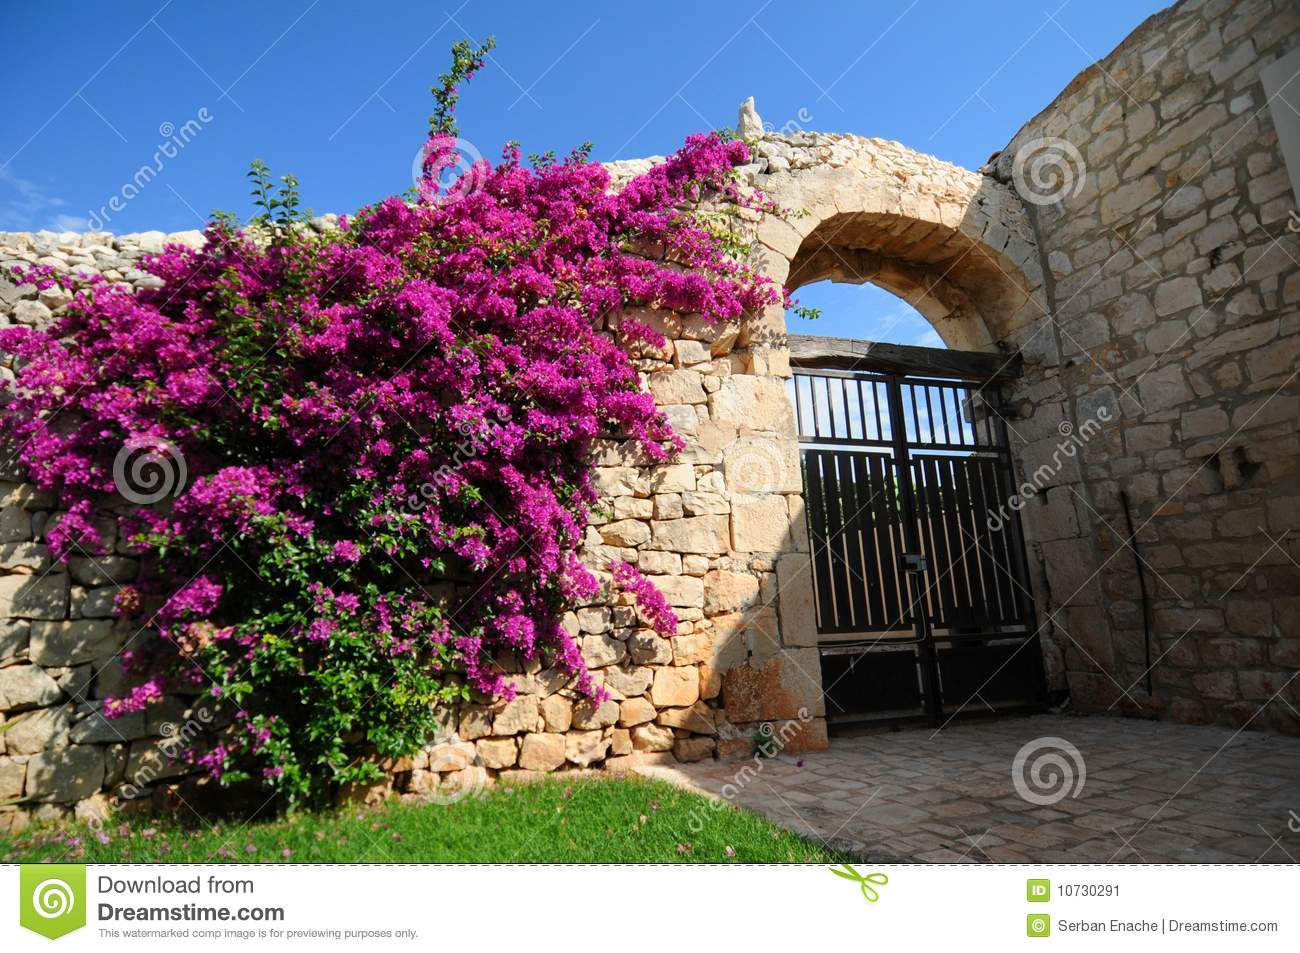 Colorful flowers on building